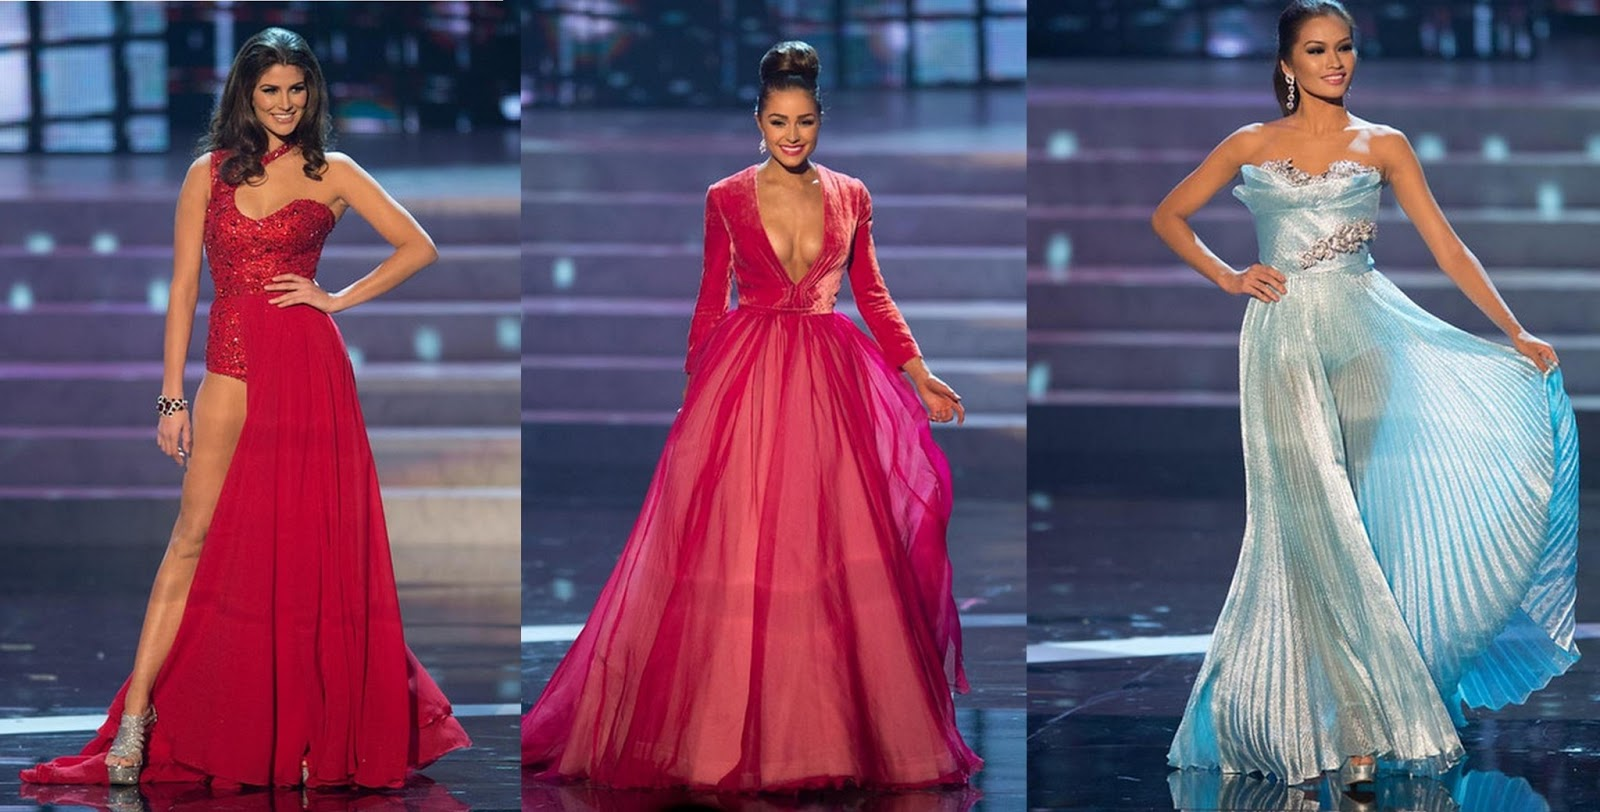 Pretty Cute and Outrageous: Miss Universe Top 10 Fab Evening Gowns!